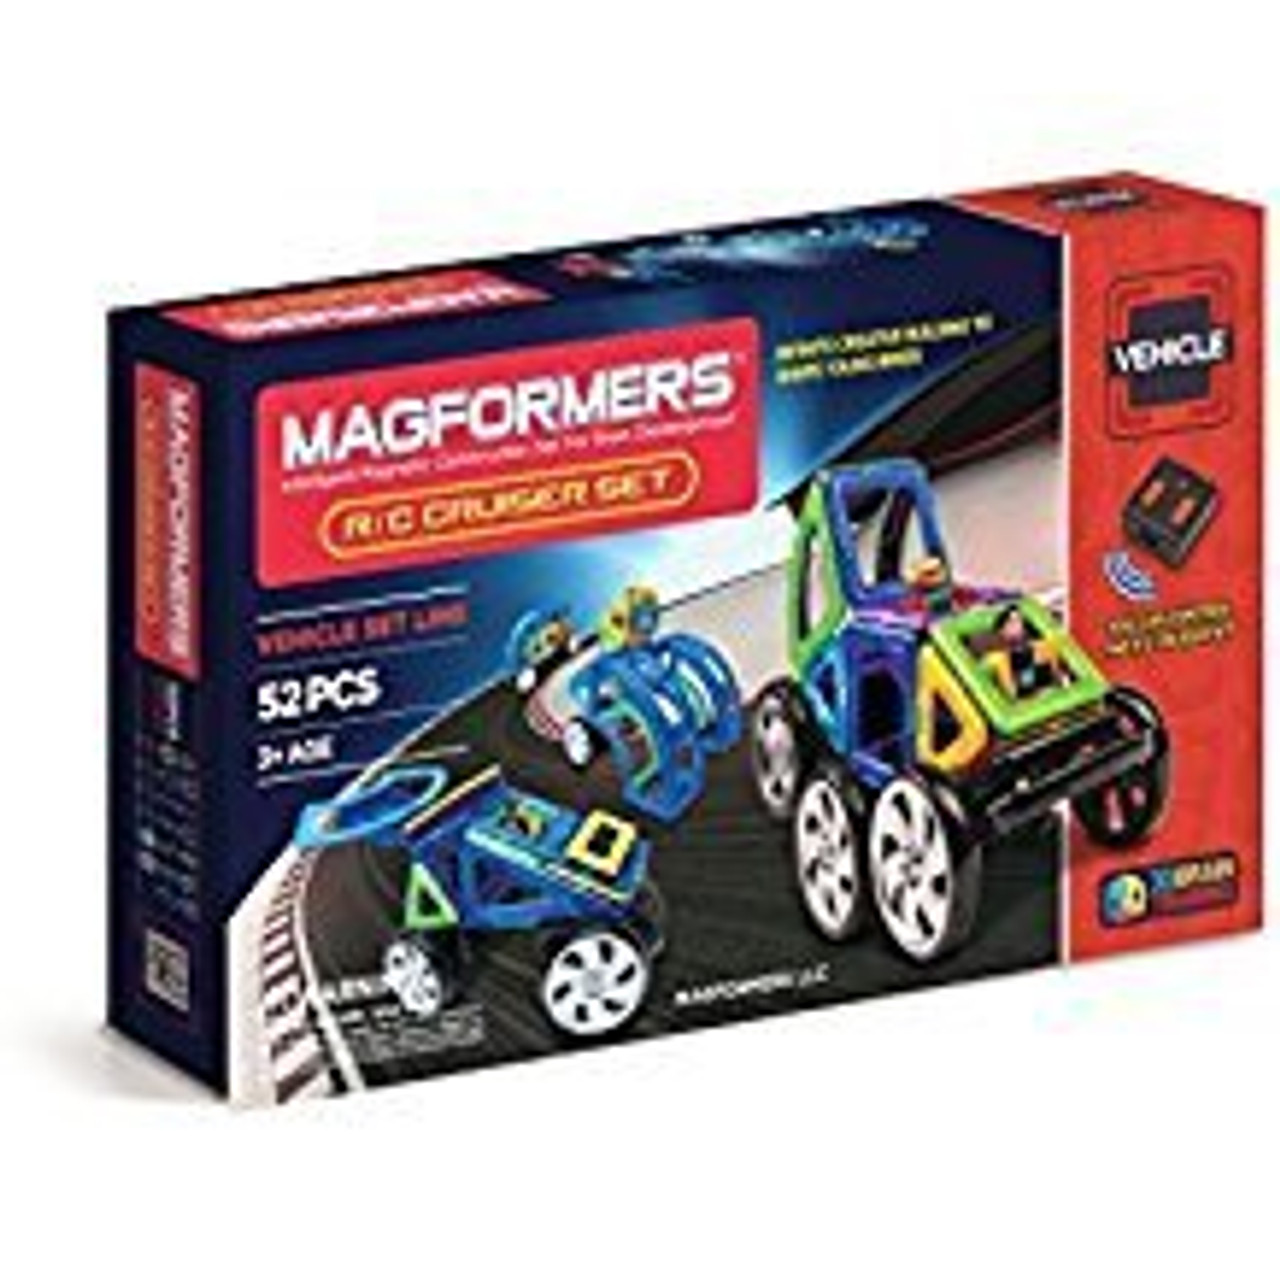 MAGFORMERS R/C CRUISERS